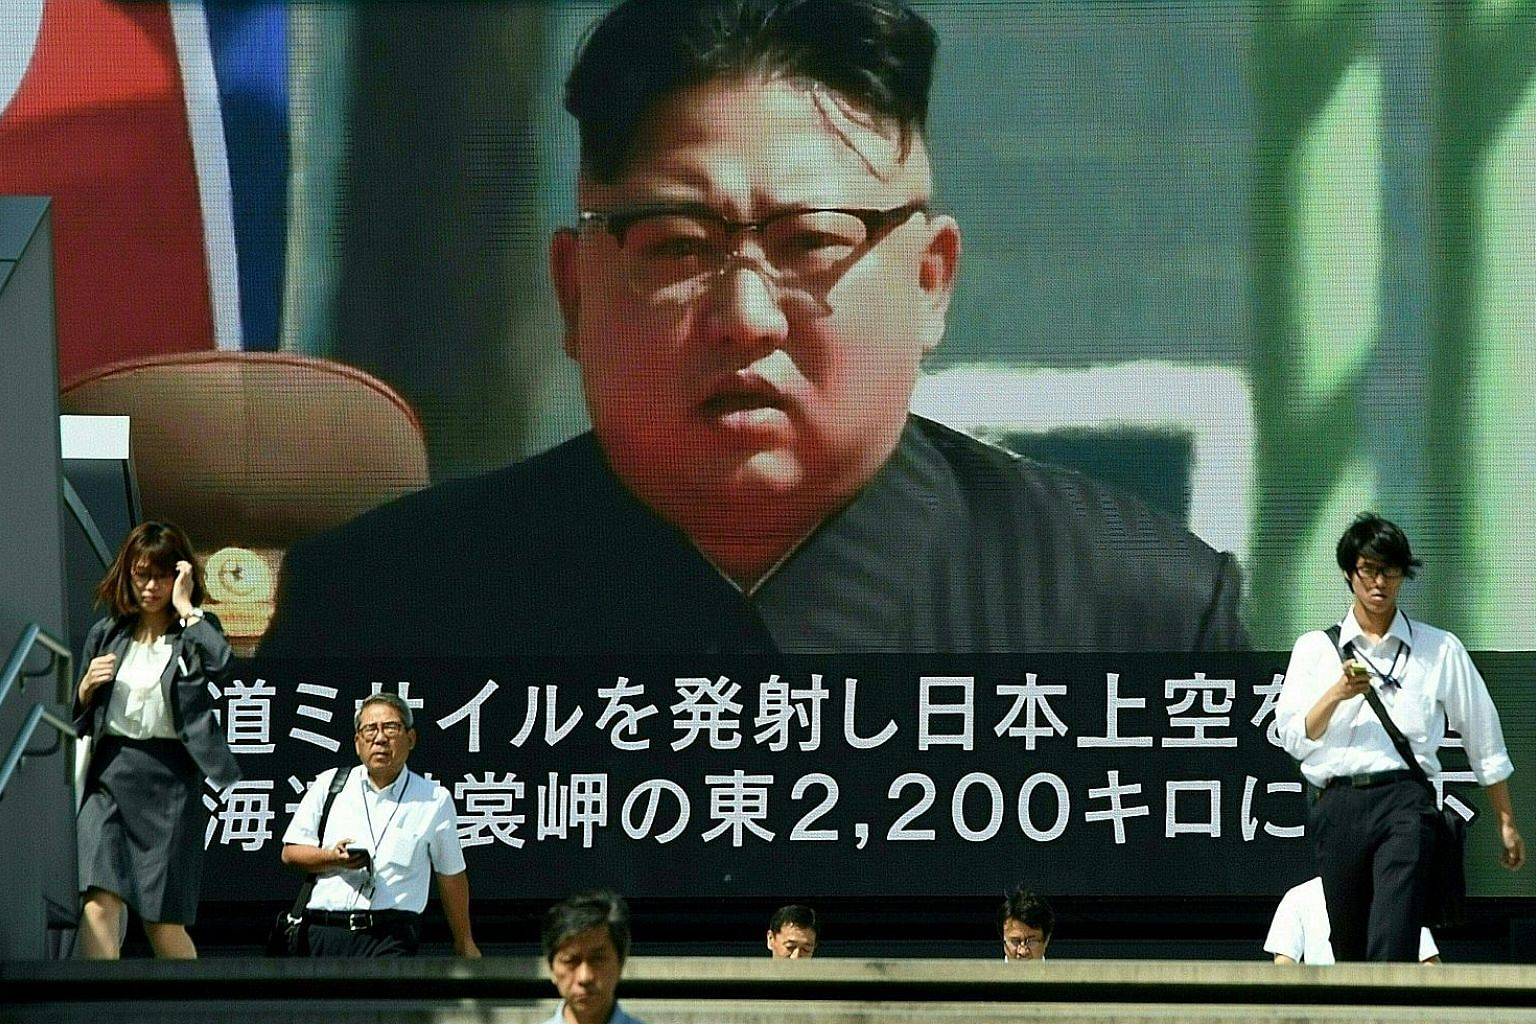 North Korean leader Kim Jong Un shown in a news broadcast in Tokyo in September last year after Pyongyang held a missile test. Tokyo remains sceptical of recent diplomacy with Pyongyang, criticising other regional powers for failing to enforce sancti